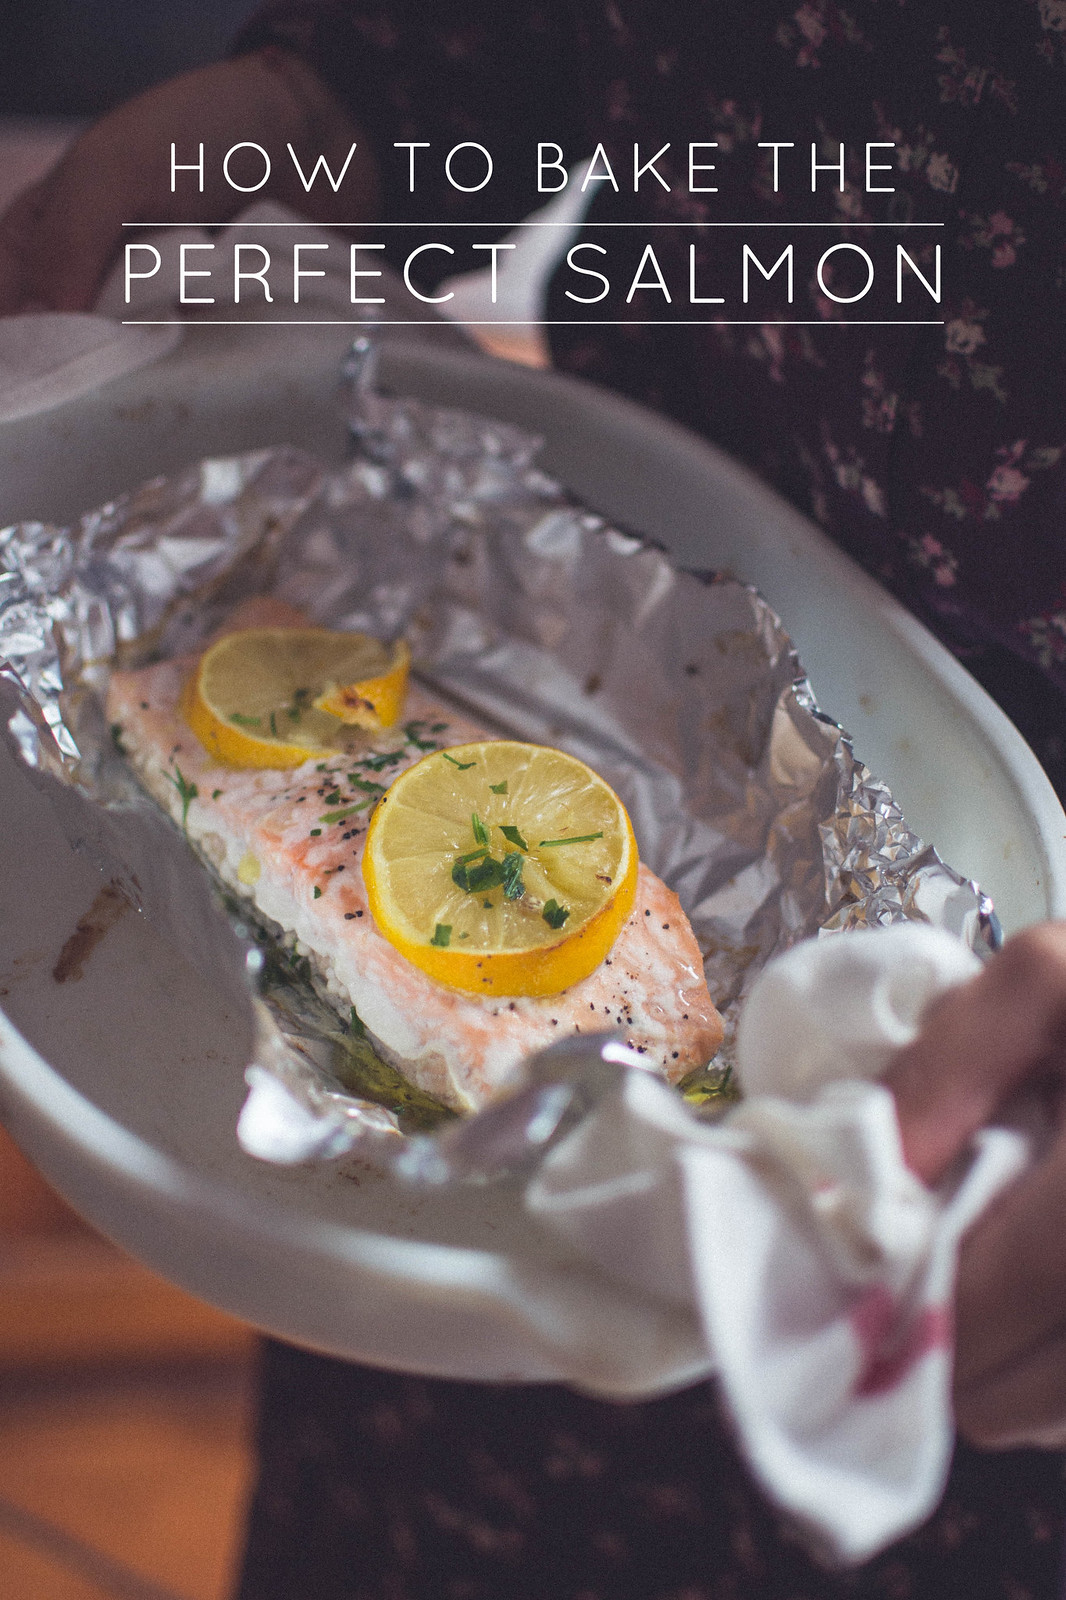 How to bake the perfect salmon